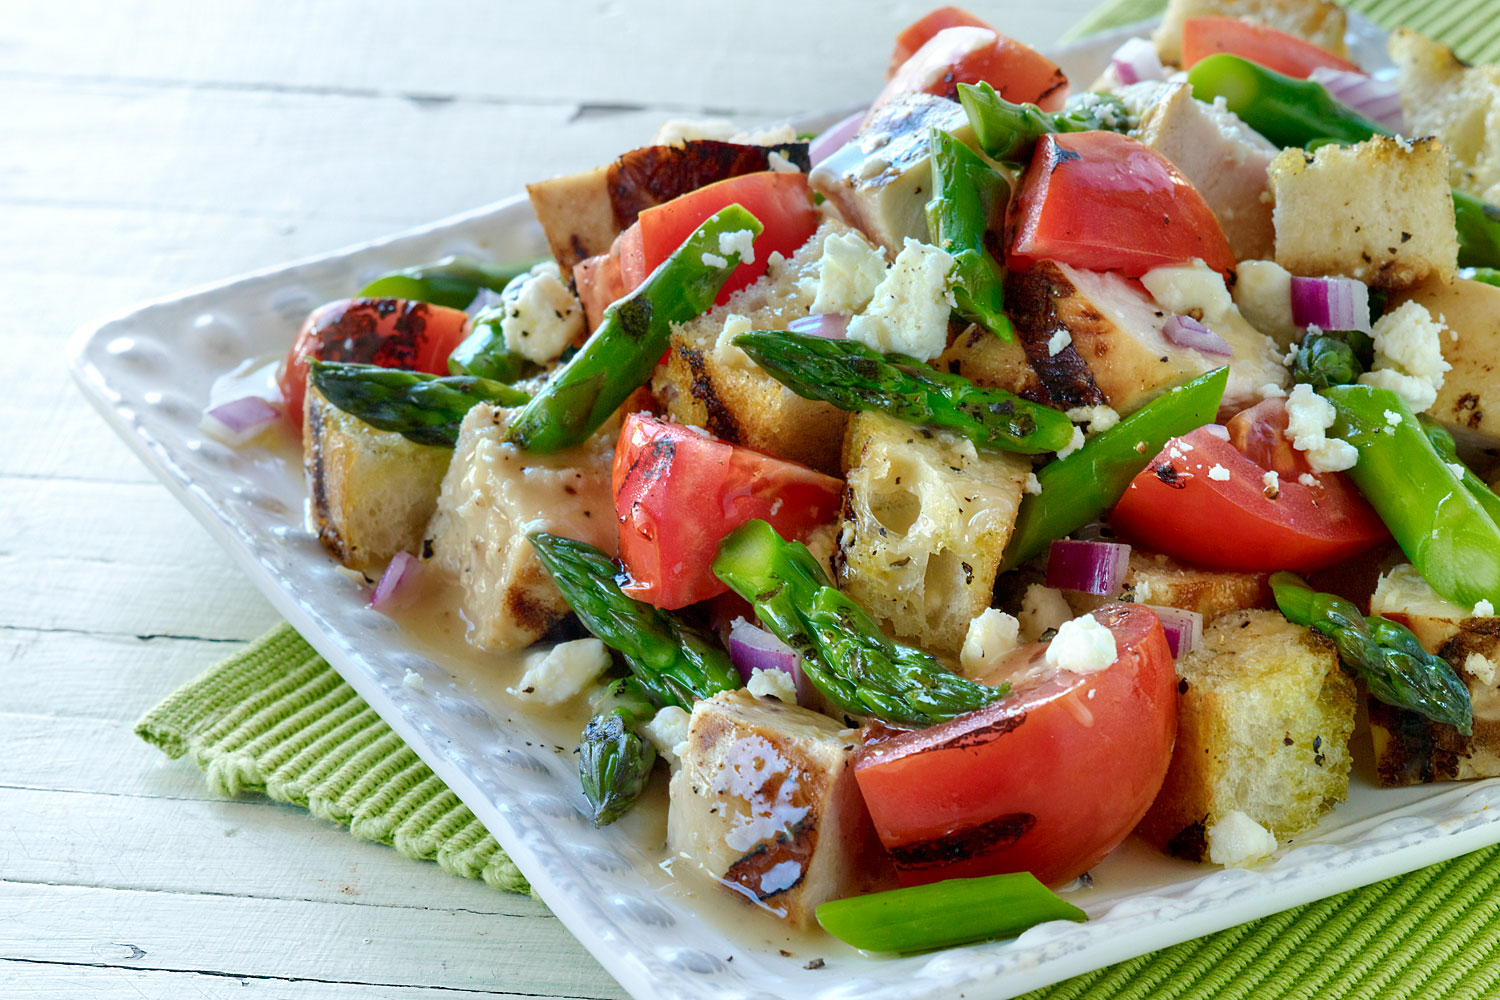 Grilled Chicken and Asparagus Panzanella Salad